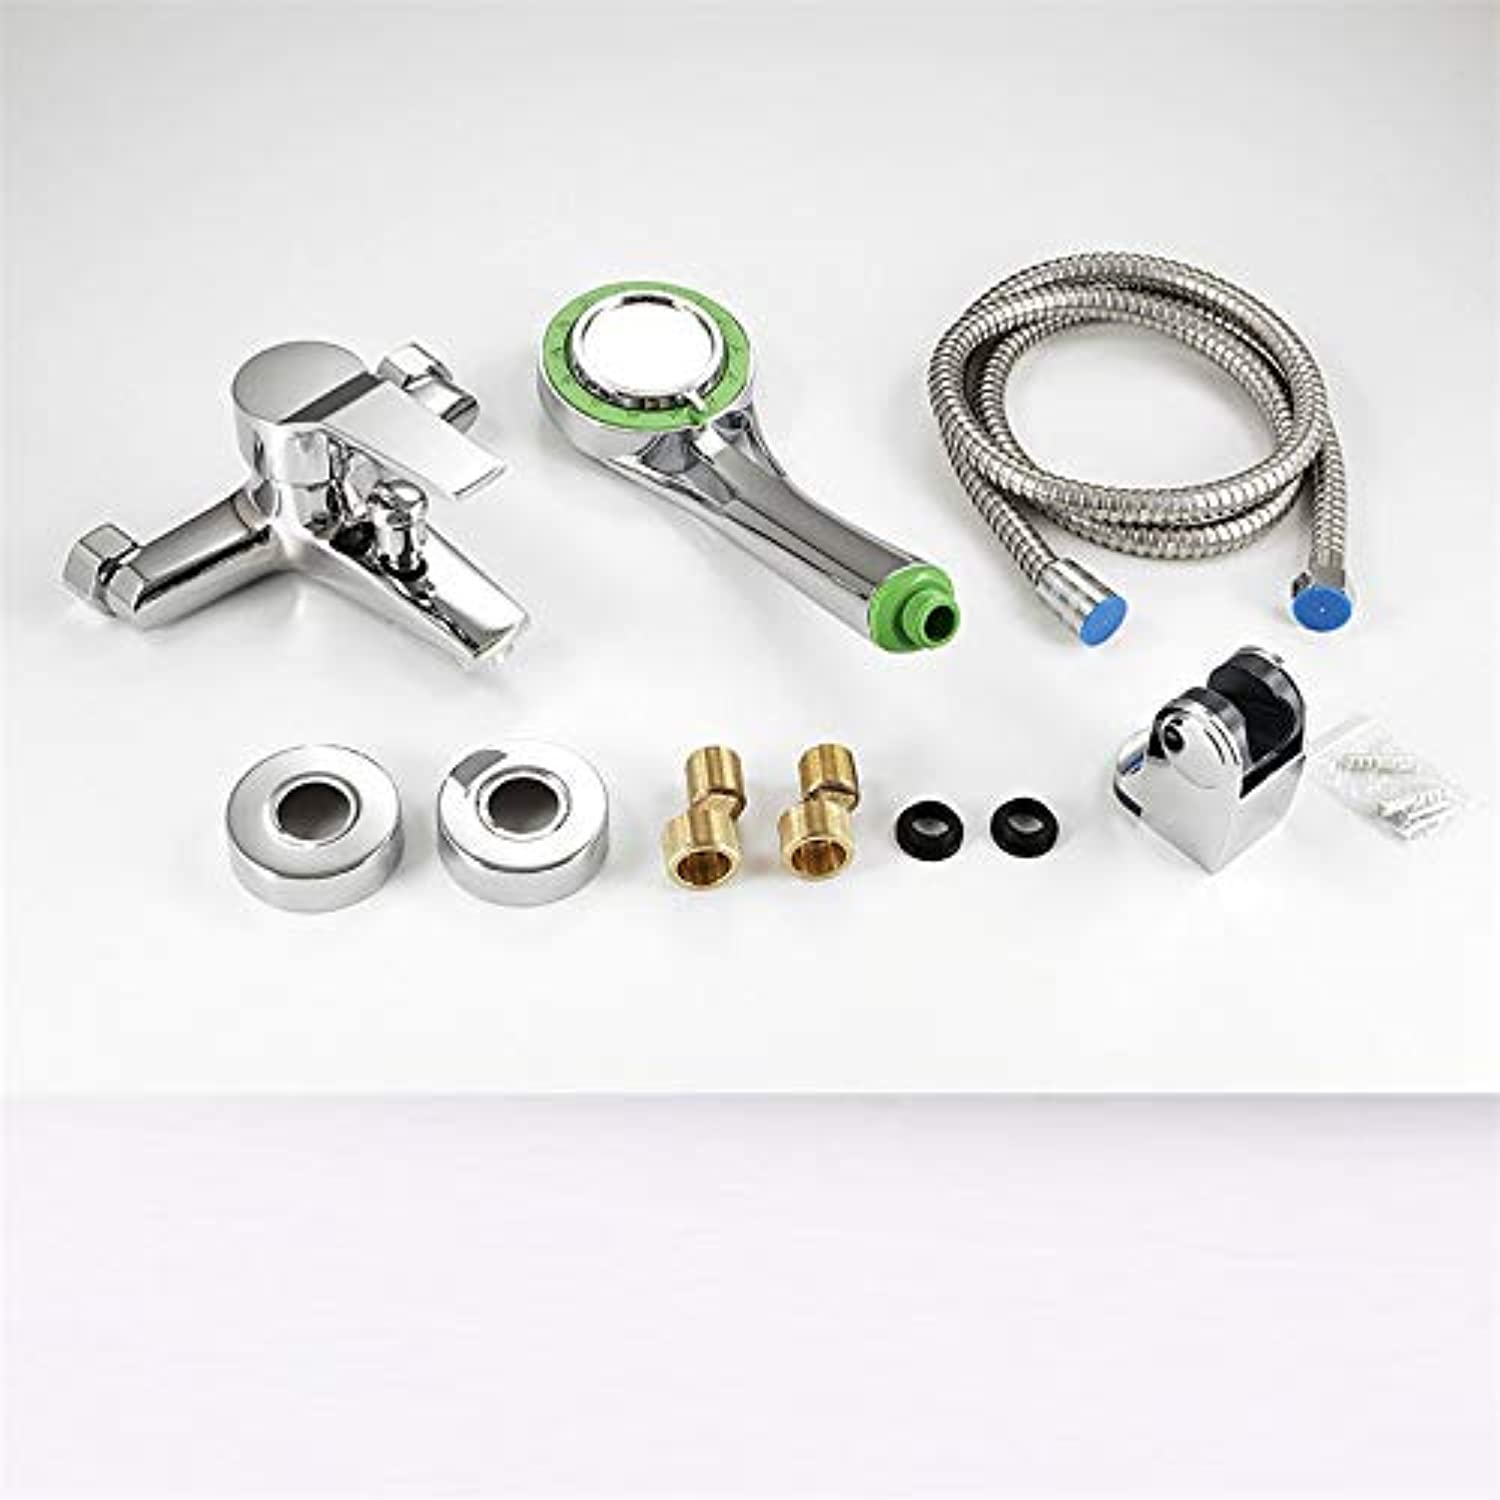 CFHJN HOME Taps Copper Shower Faucet Hot And Cold Mixing Valve Bathtub Faucet + Shower Set B